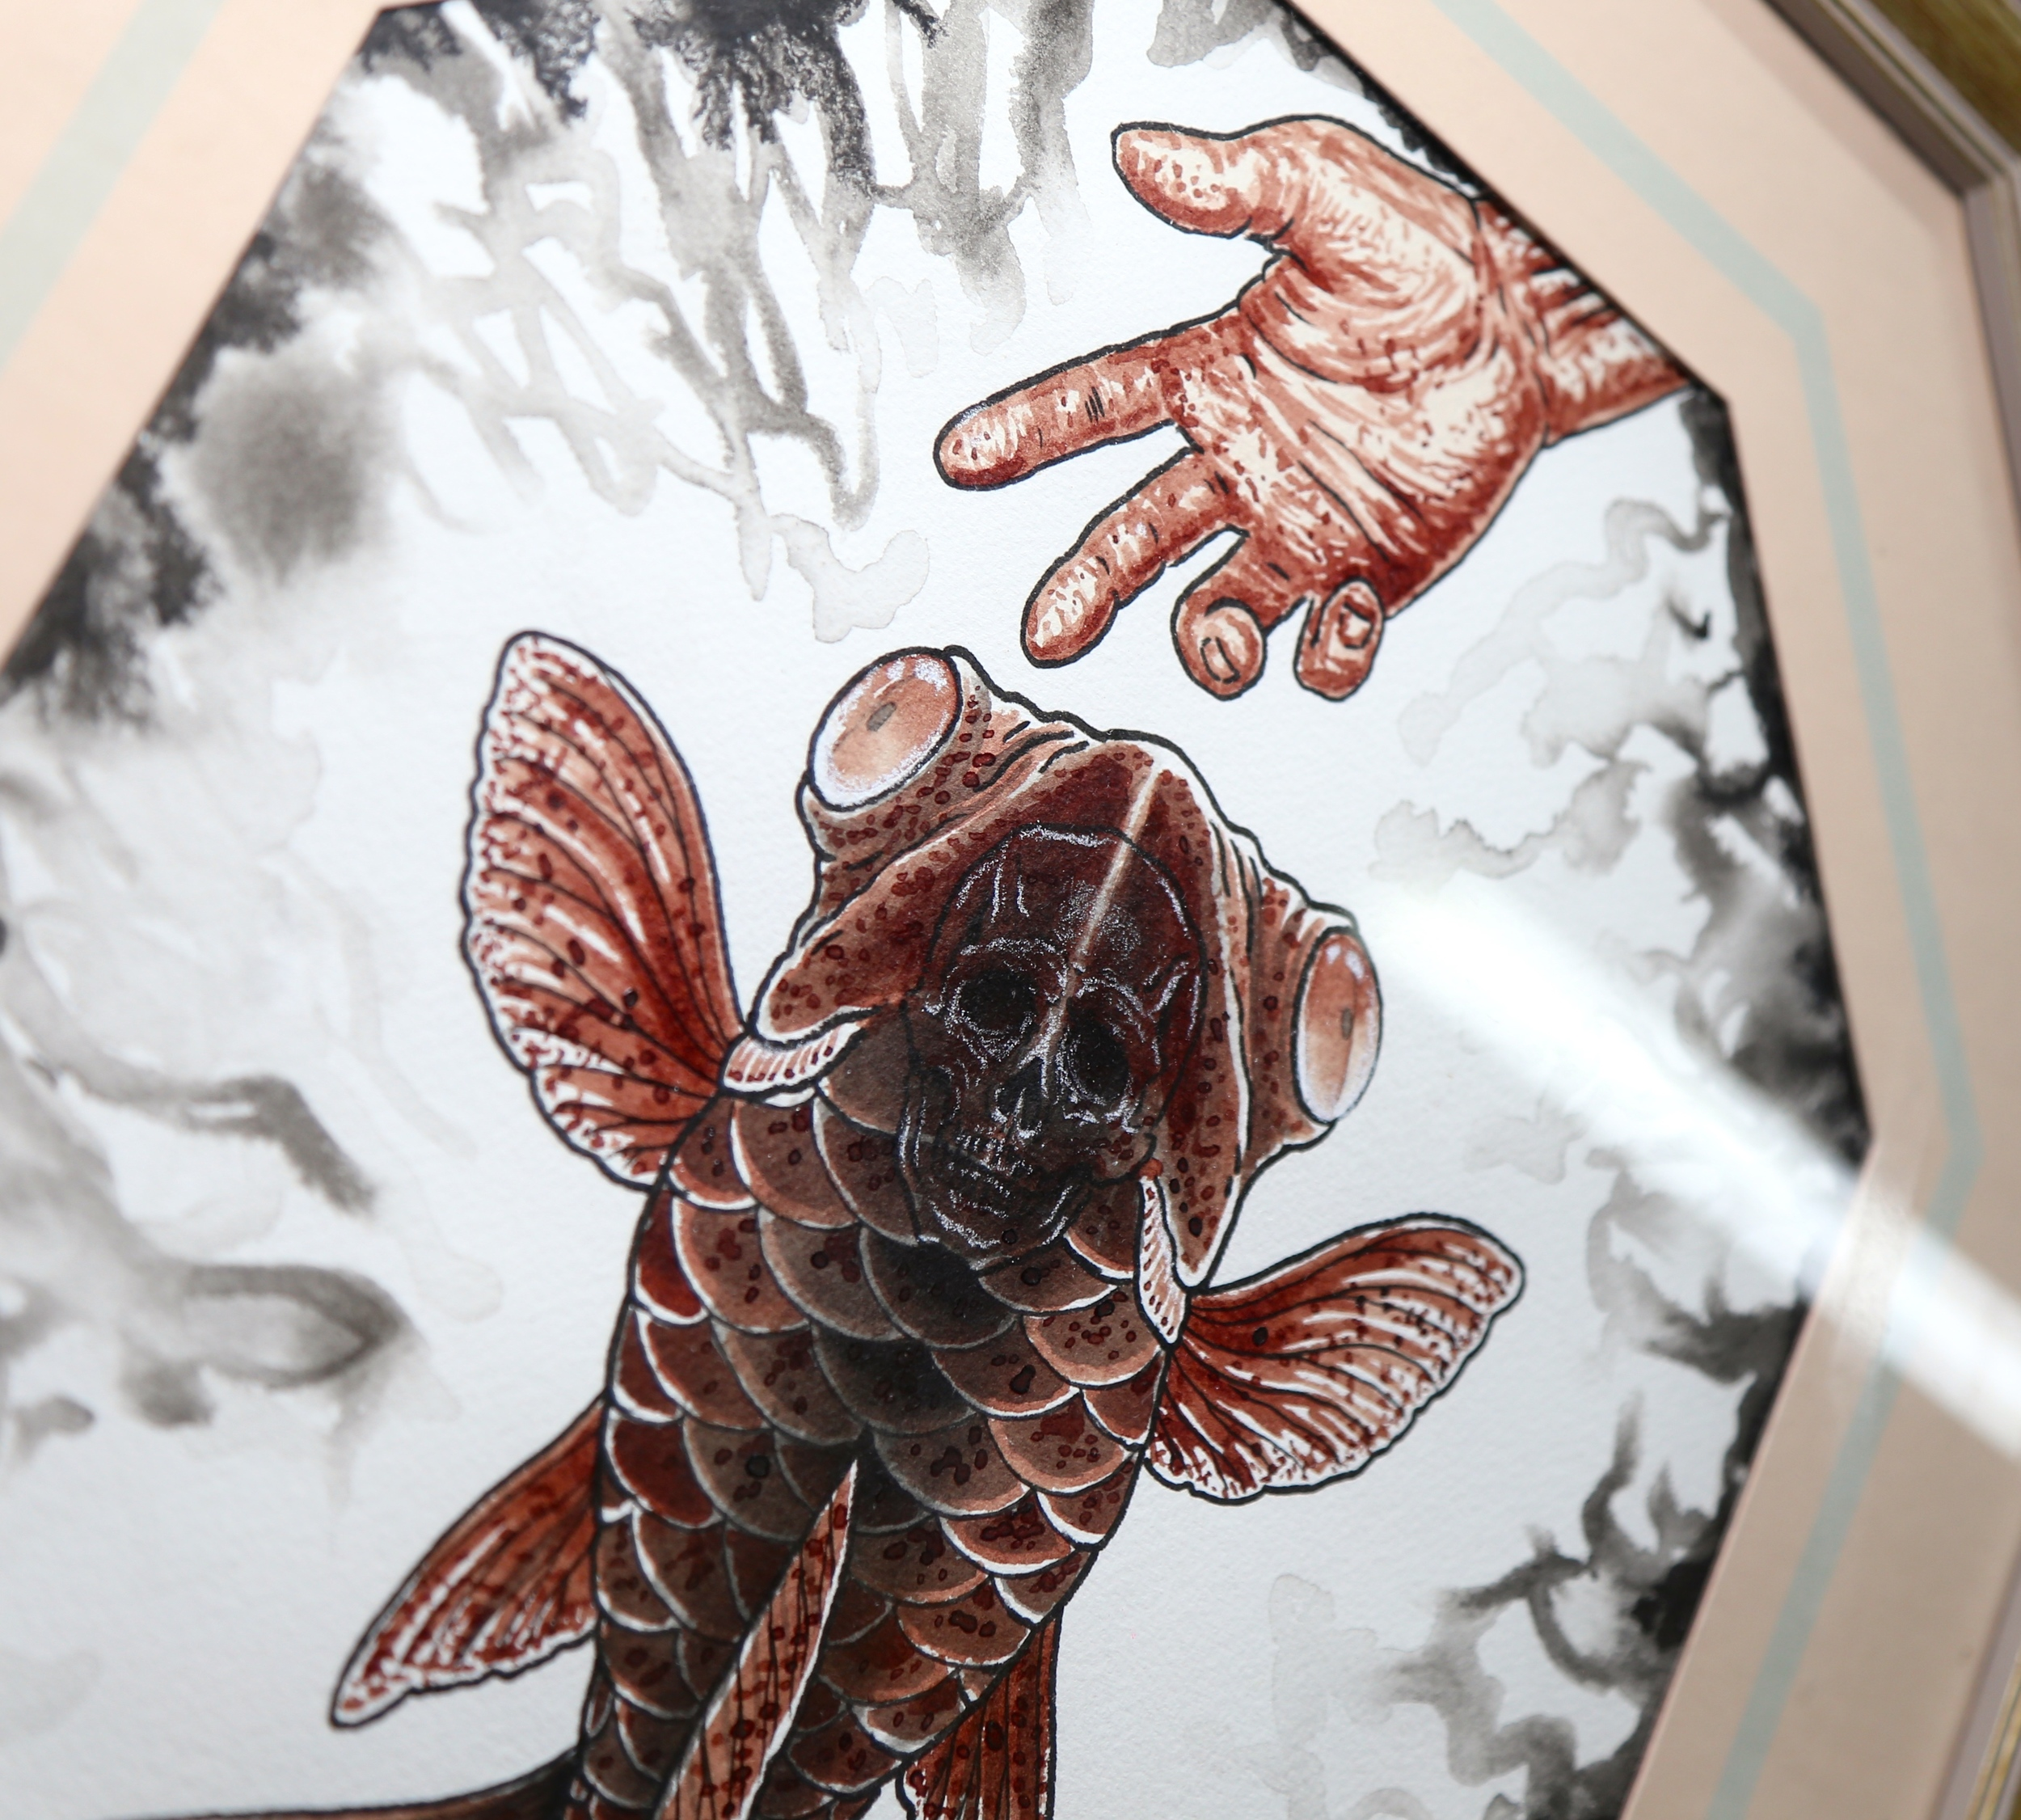 fish painting with my blood 2 enrique bernal ejay tattoo.JPG